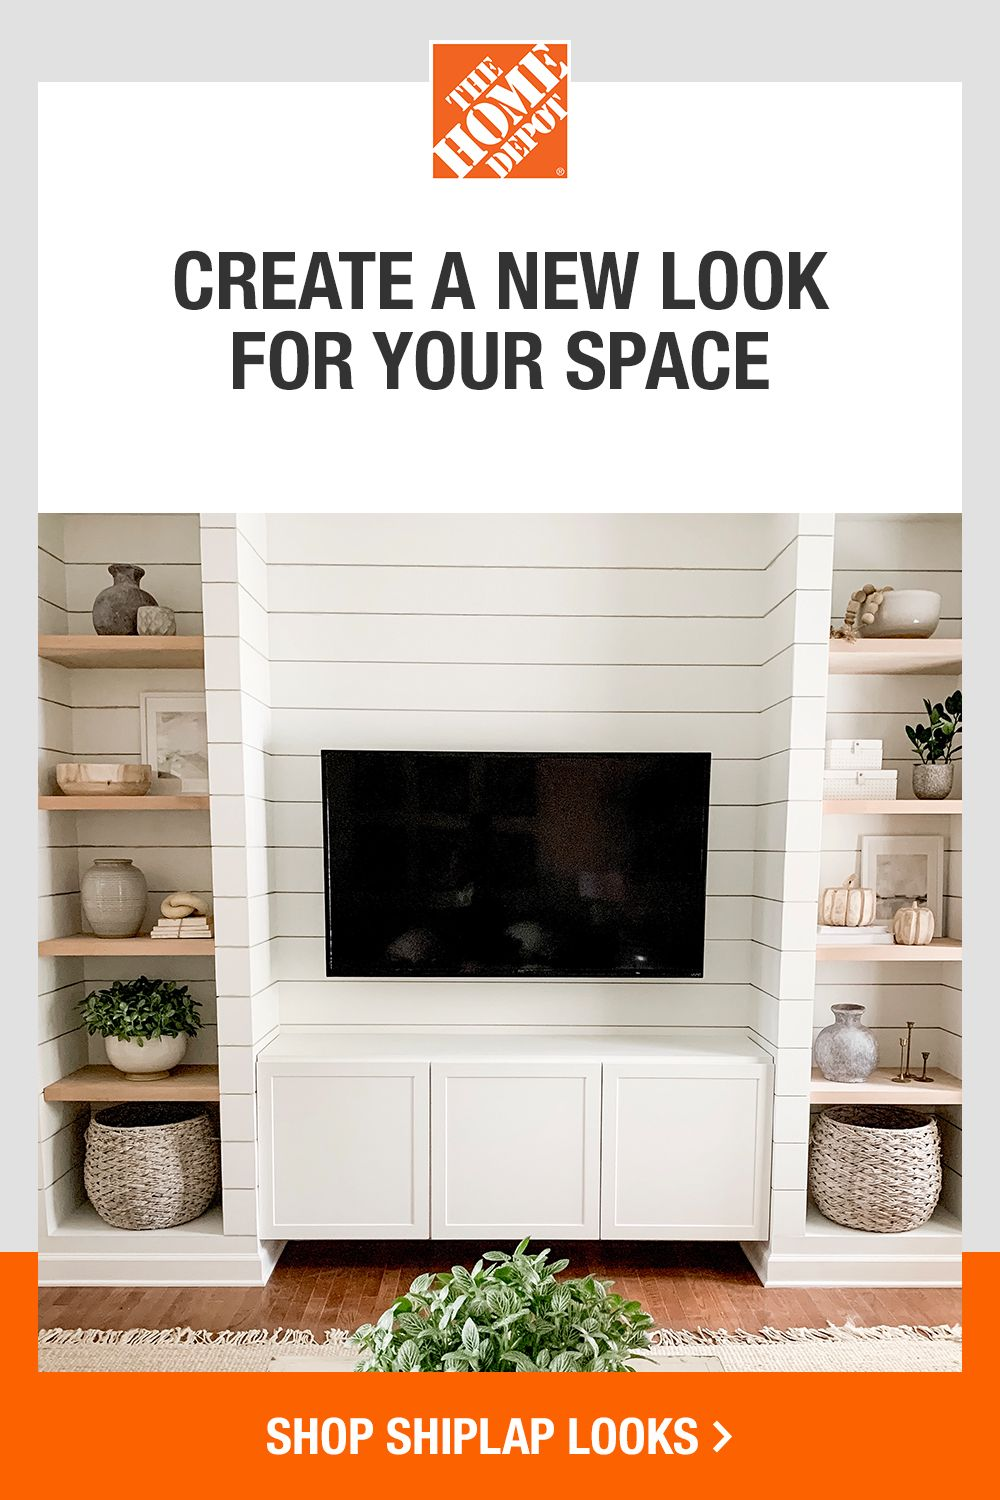 Find a variety of shiplap-inspired looks that fit your budget. Create a new look with how-to guides and tool rentals to help you along every step of your project. Tap to shop shiplap looks at The Home Depot.